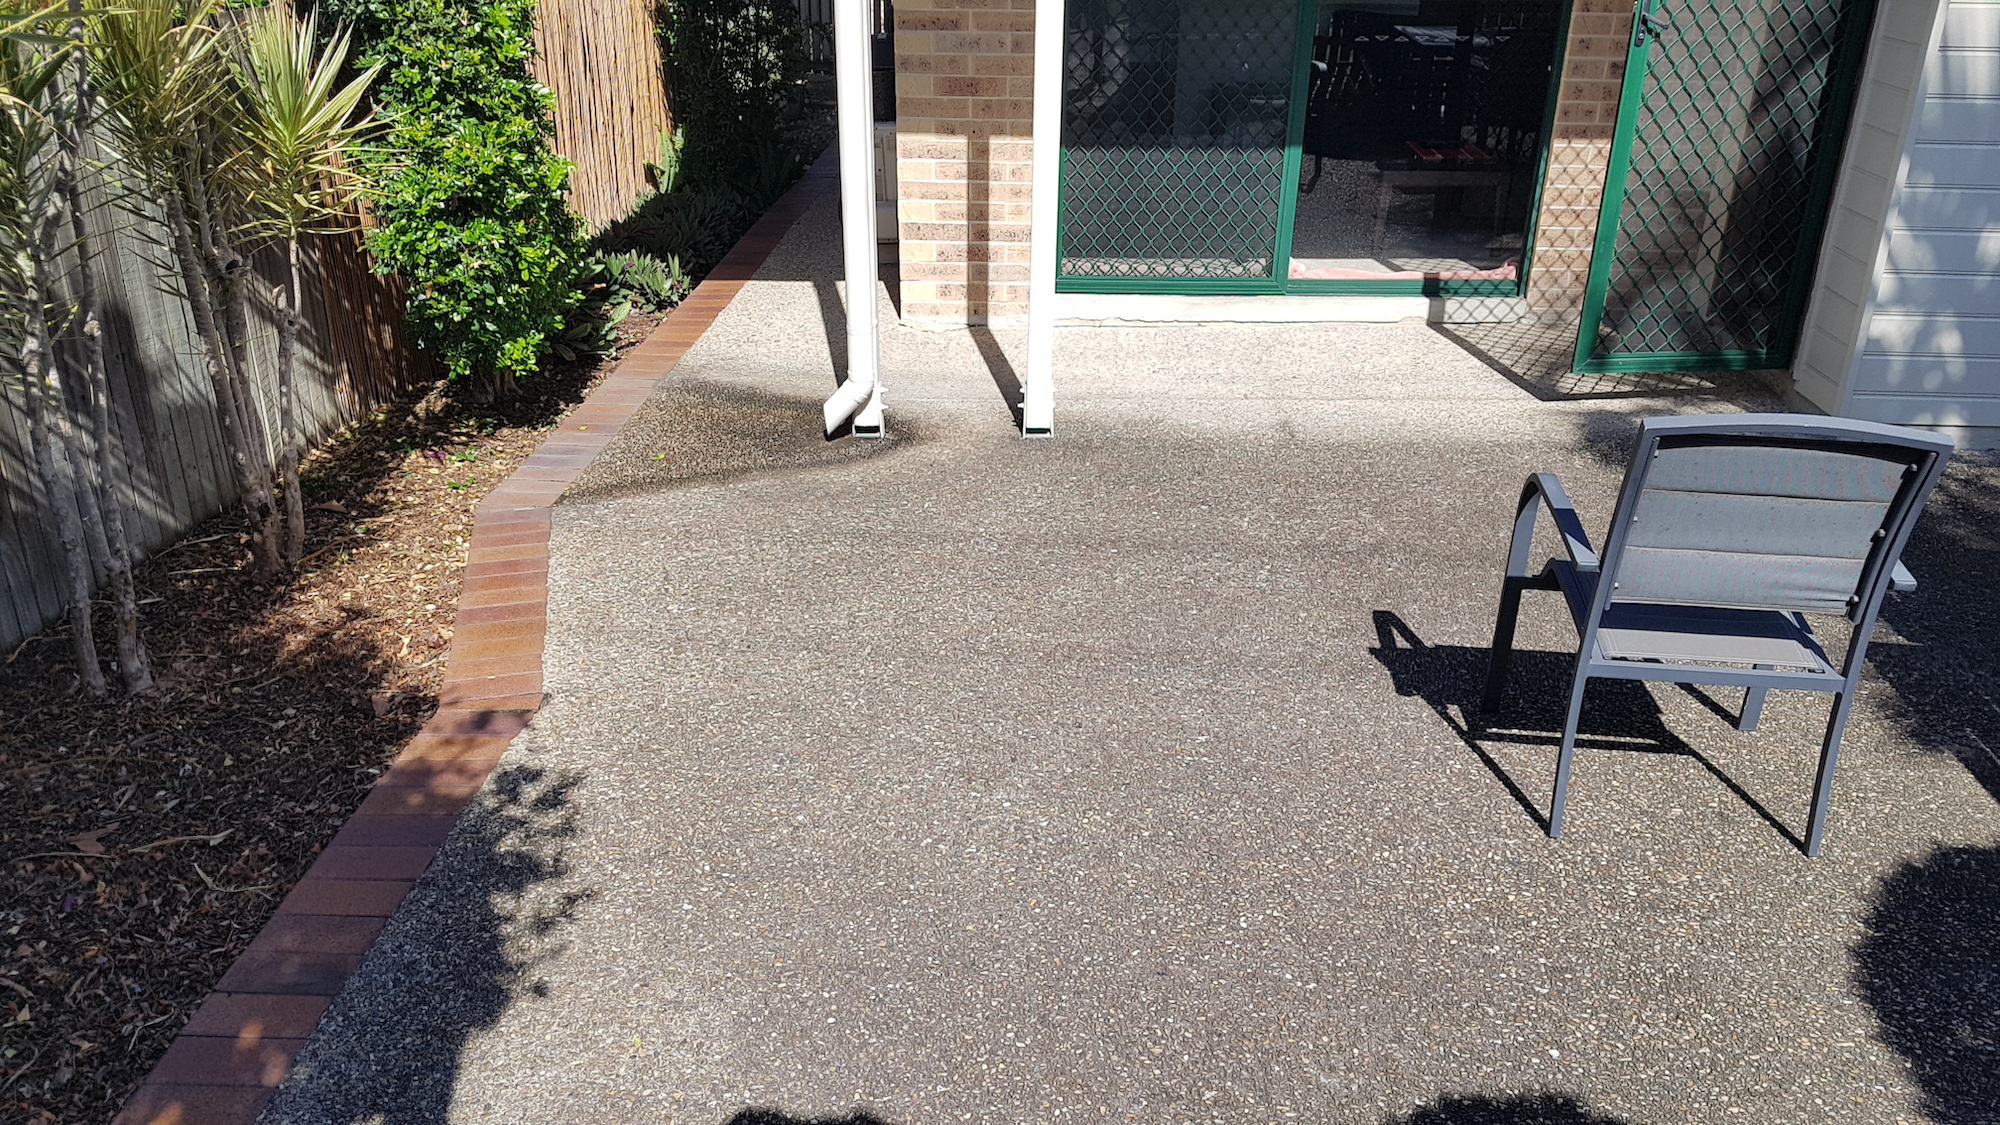 Exposed aggregate concrete courtyard - dirty, mouldy & slippery